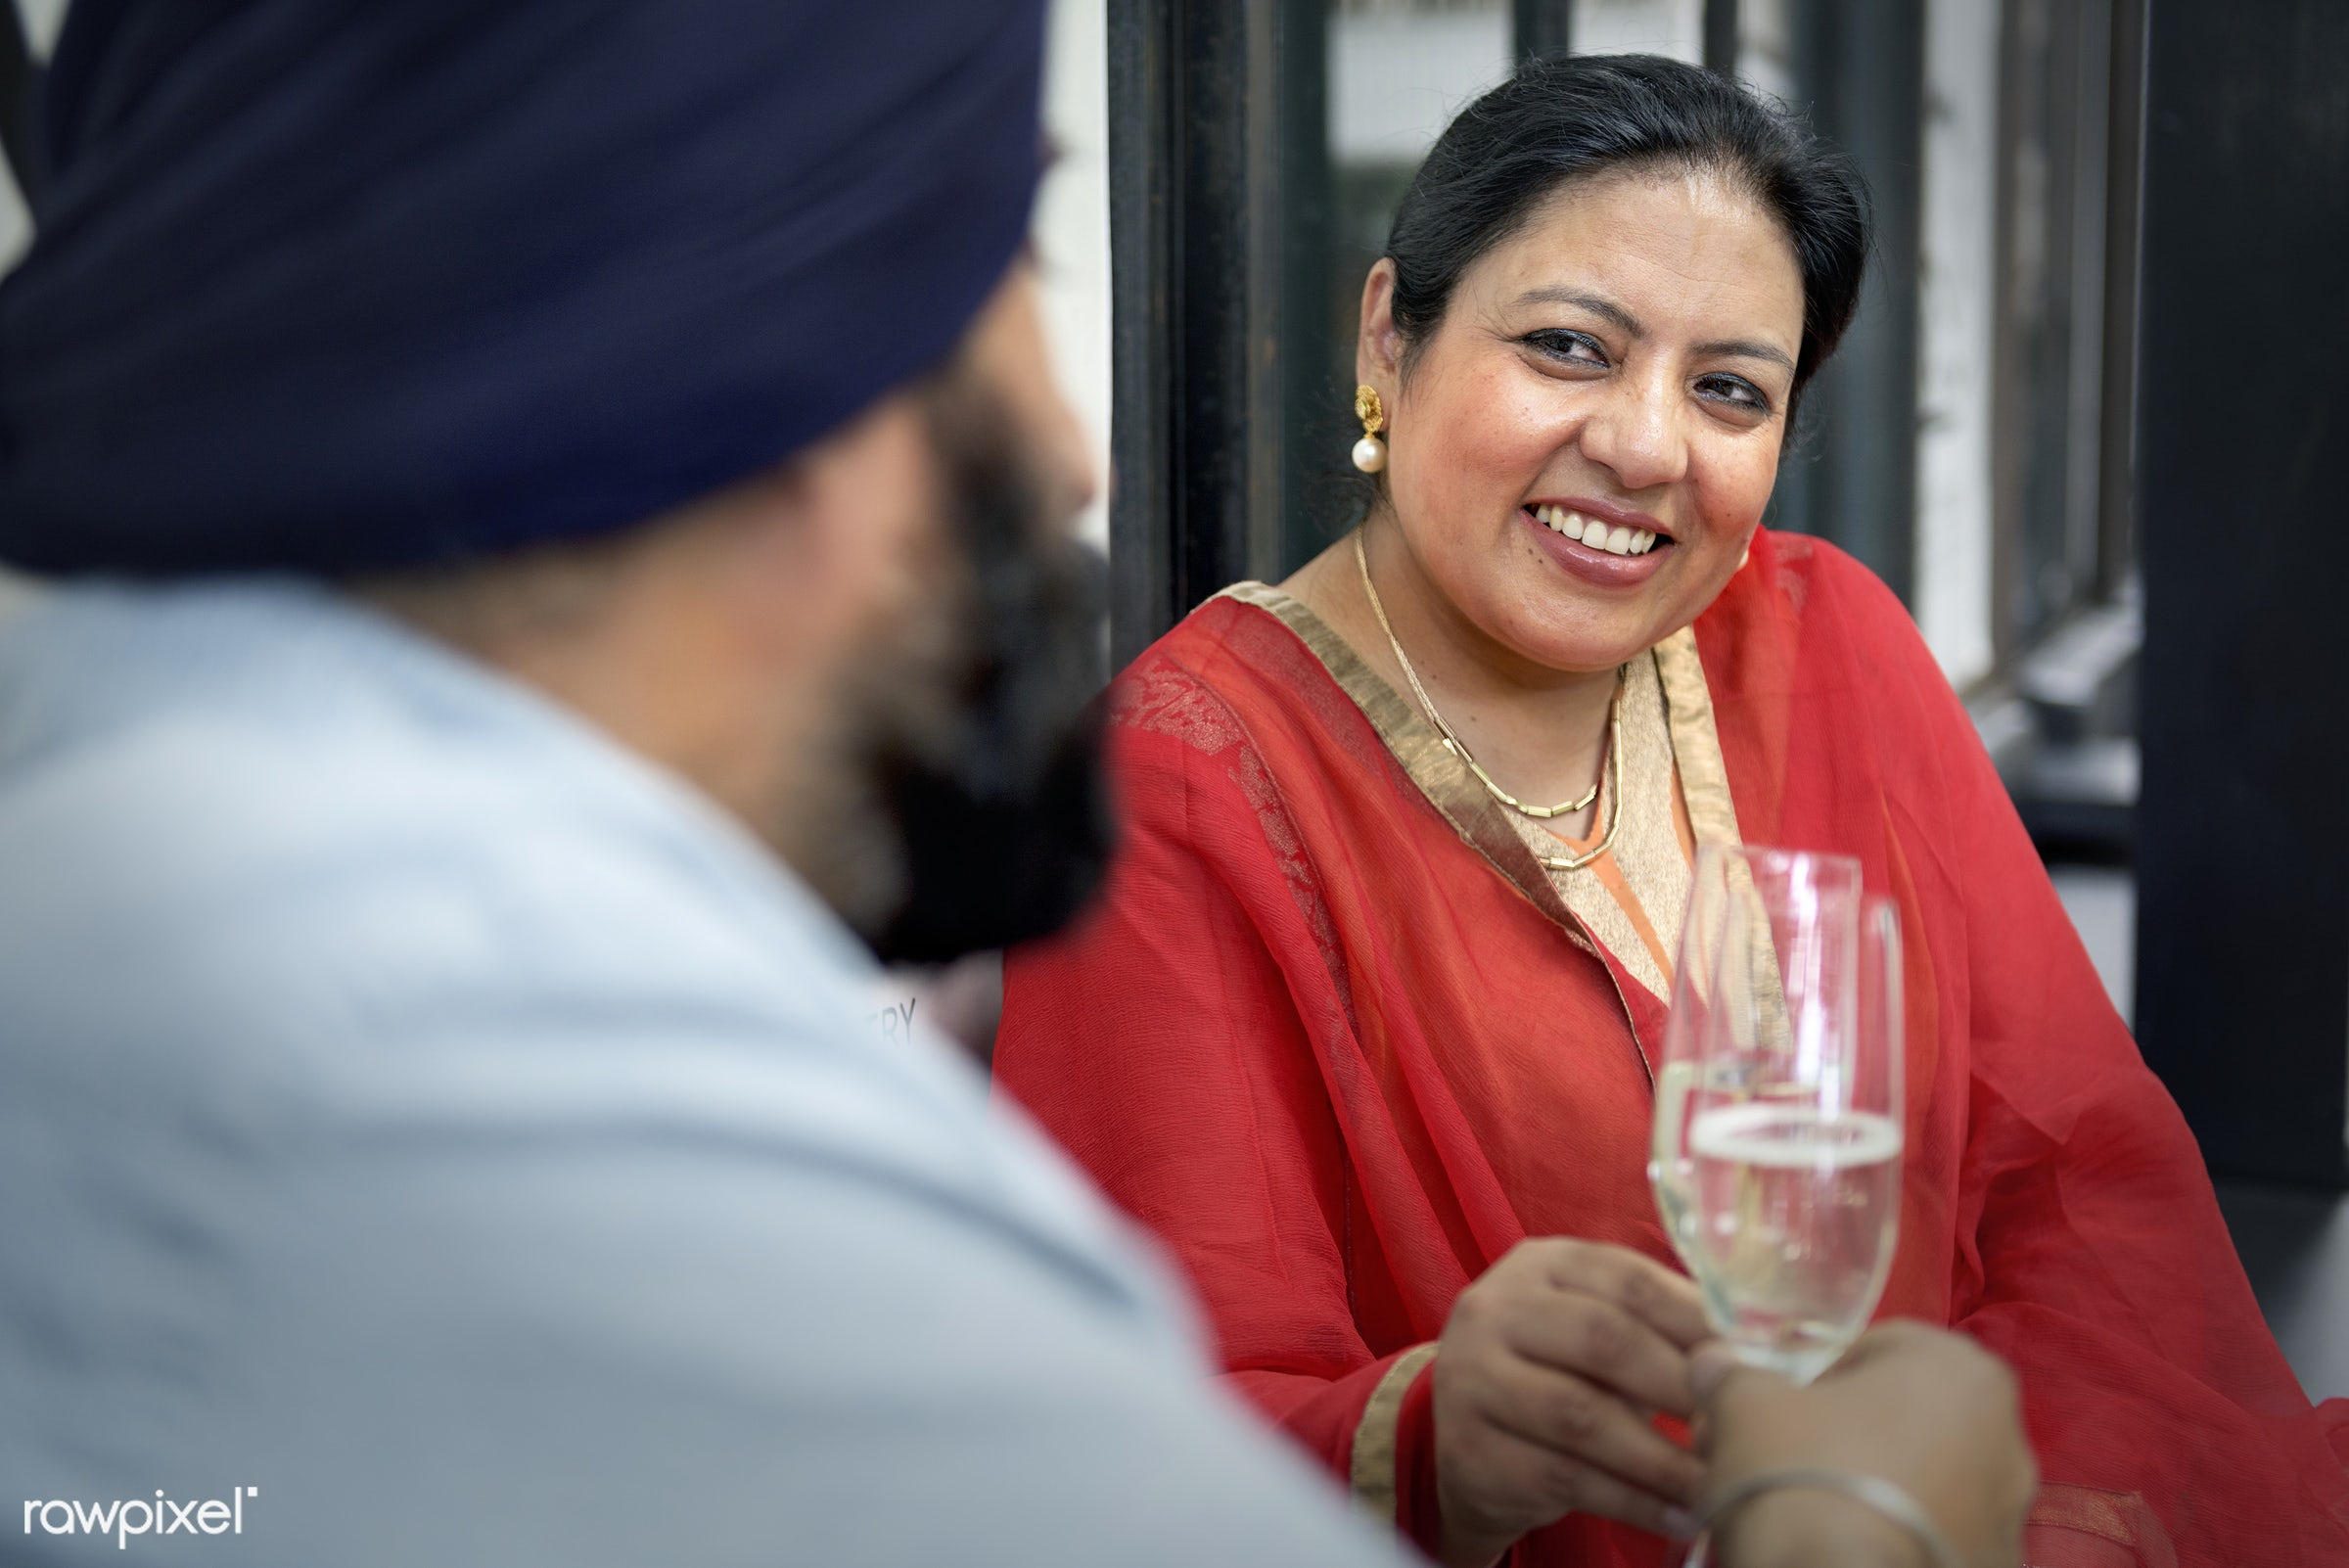 Indian Couple Dining Together Concept - adult, anniversary, care, celebrating, celebration, cheerful, communication,...